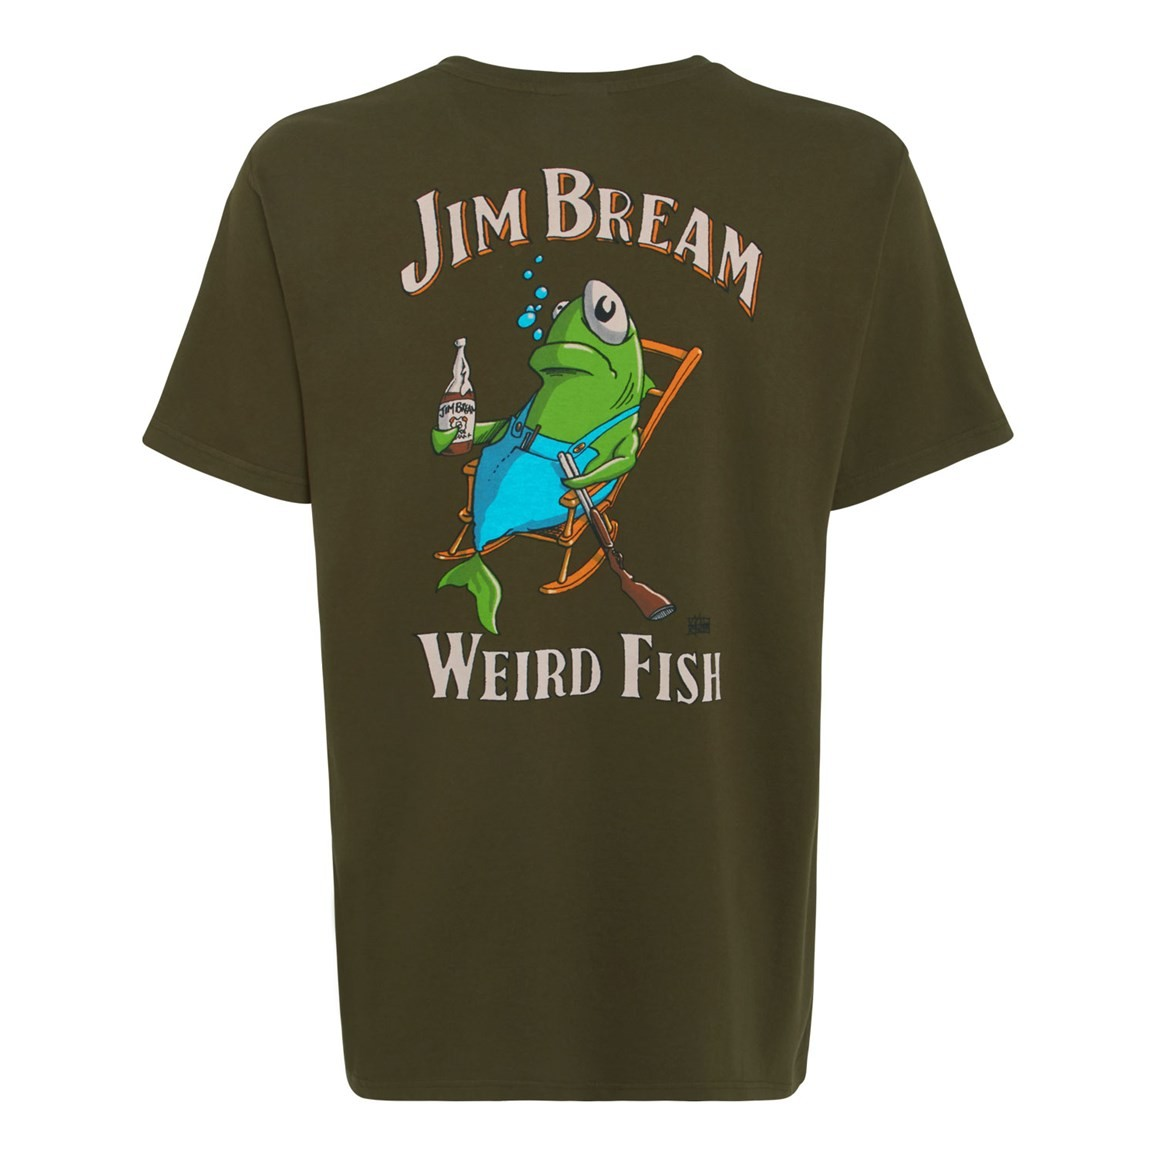 Weird Fish Jim Bream Printed Artist T-Shirt Olive Night